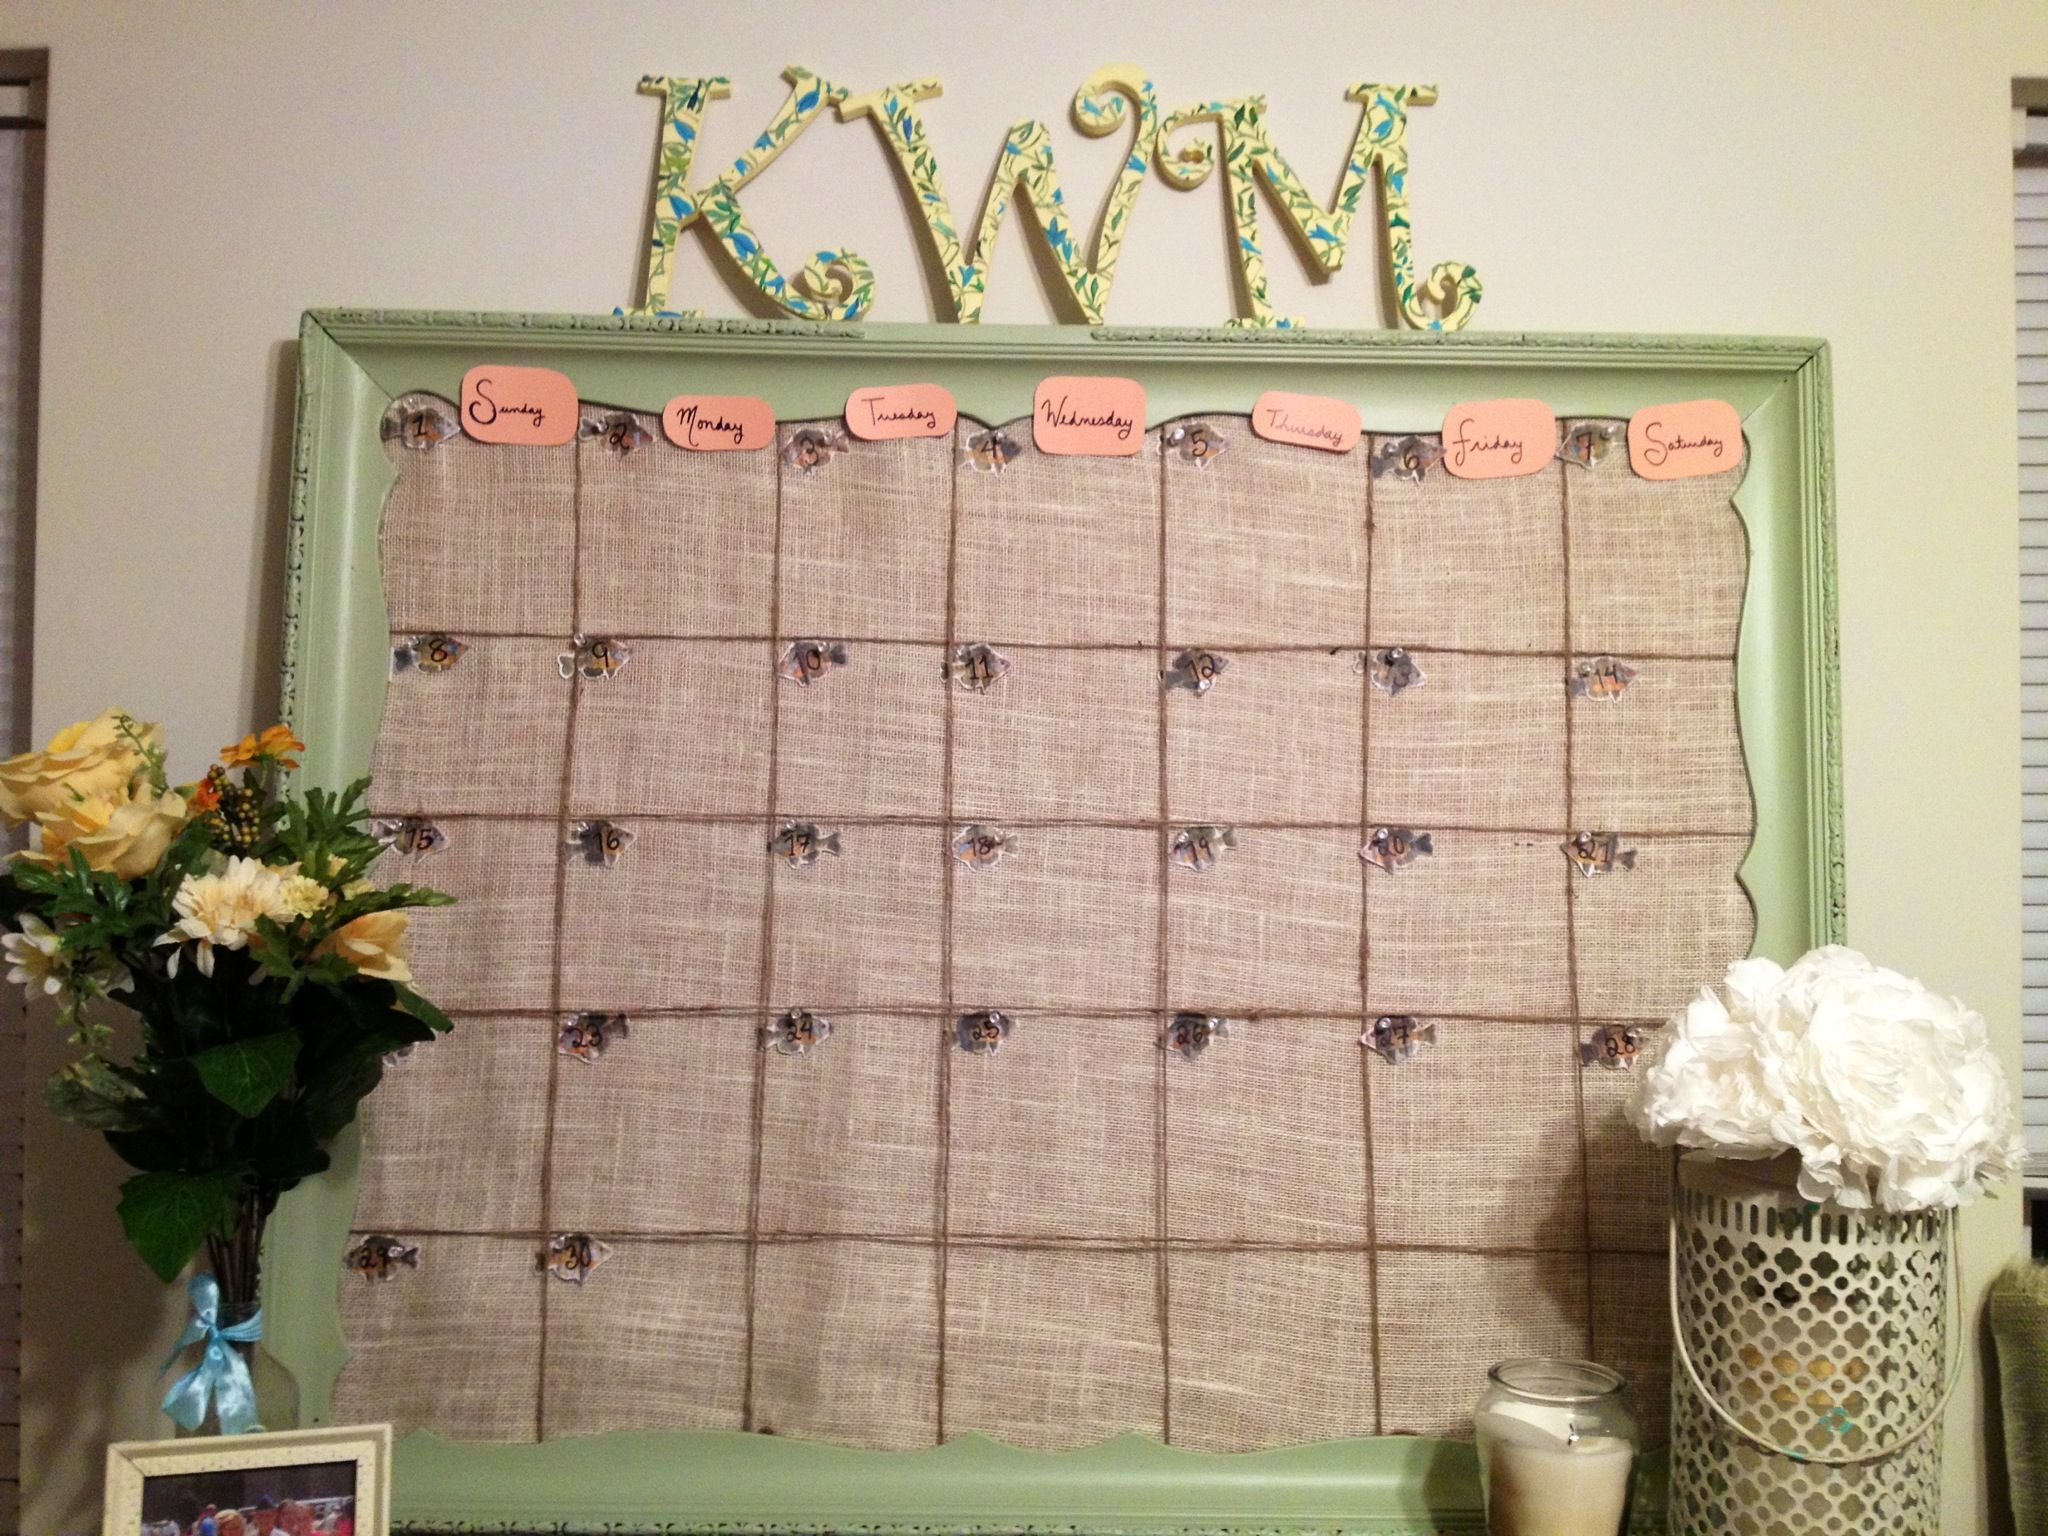 Push Pin Calendar Make From Massive Yard Sale Frame With Burlap